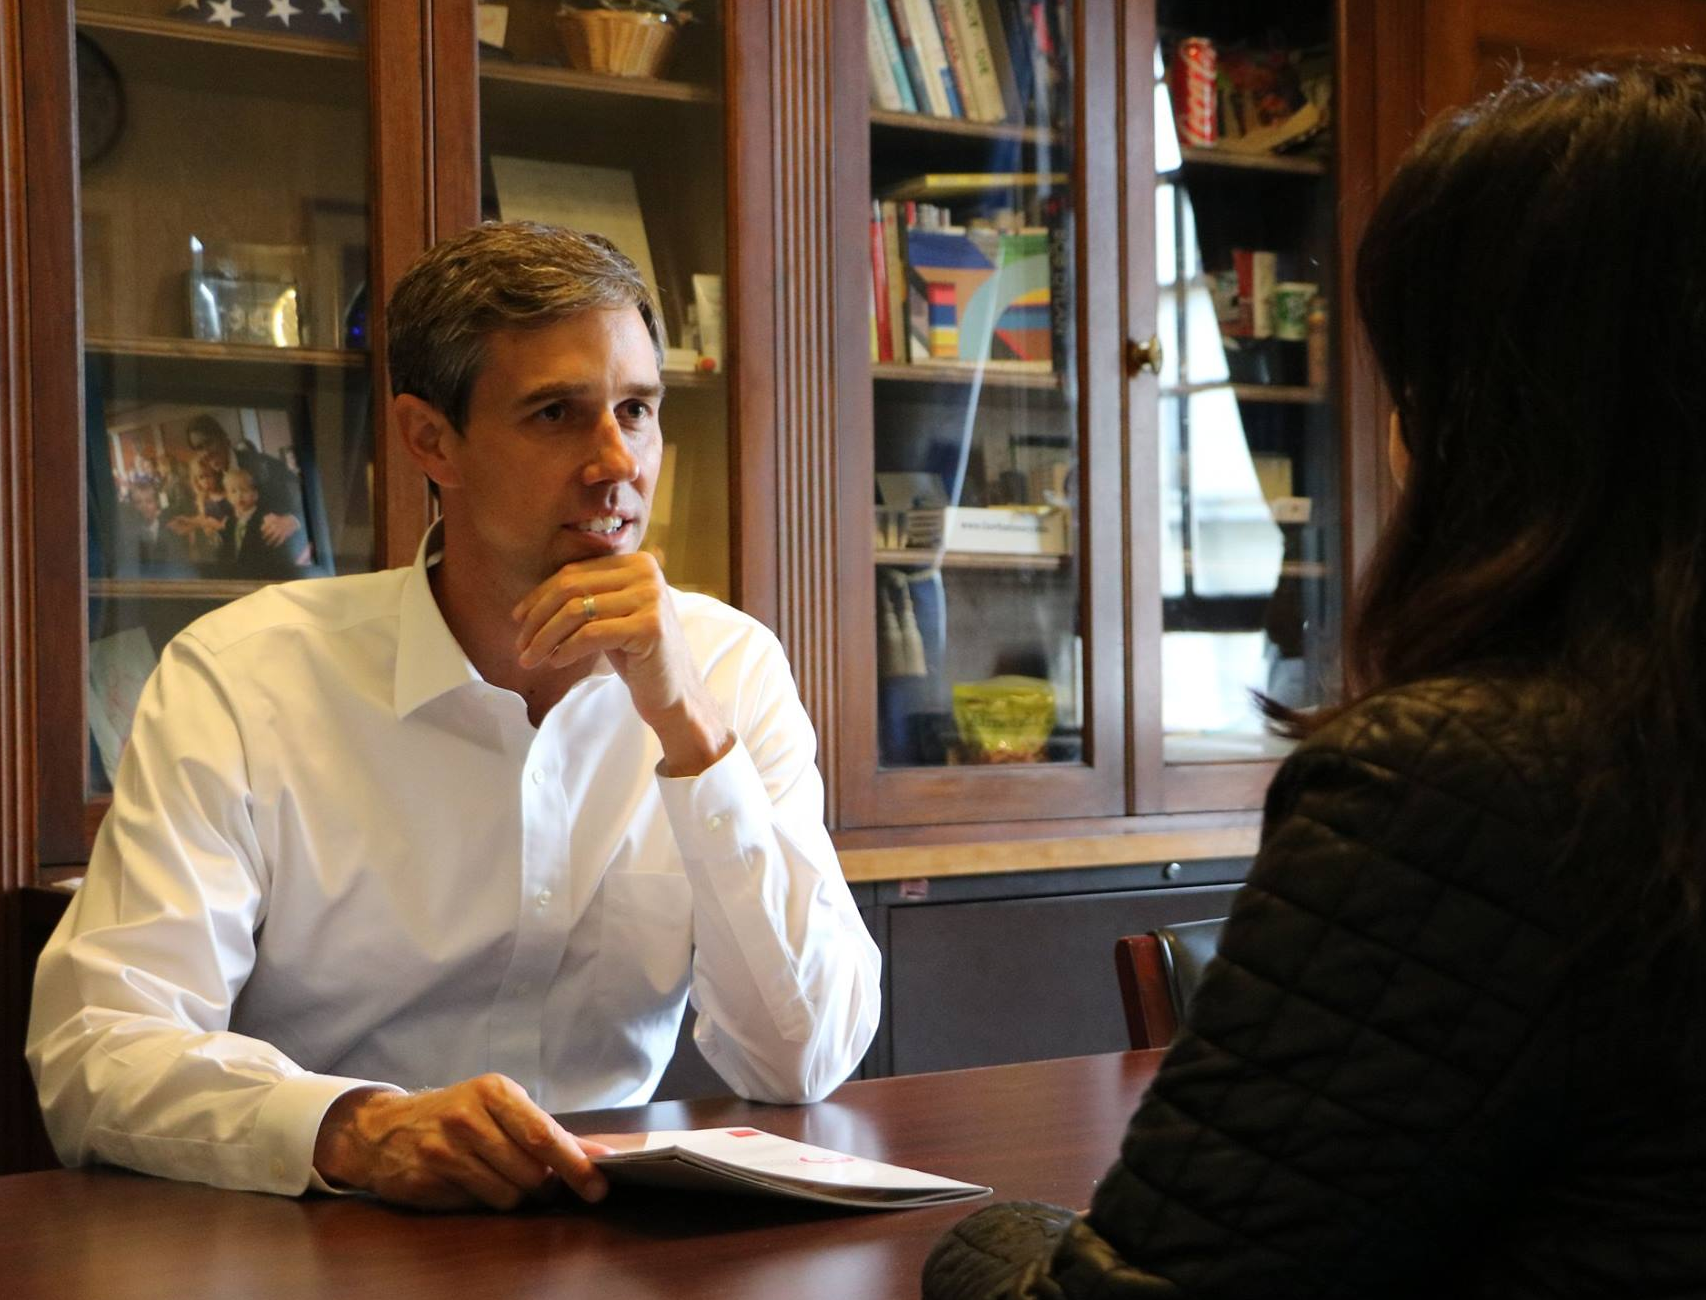 O'Rourke/Photo by Congressional Office